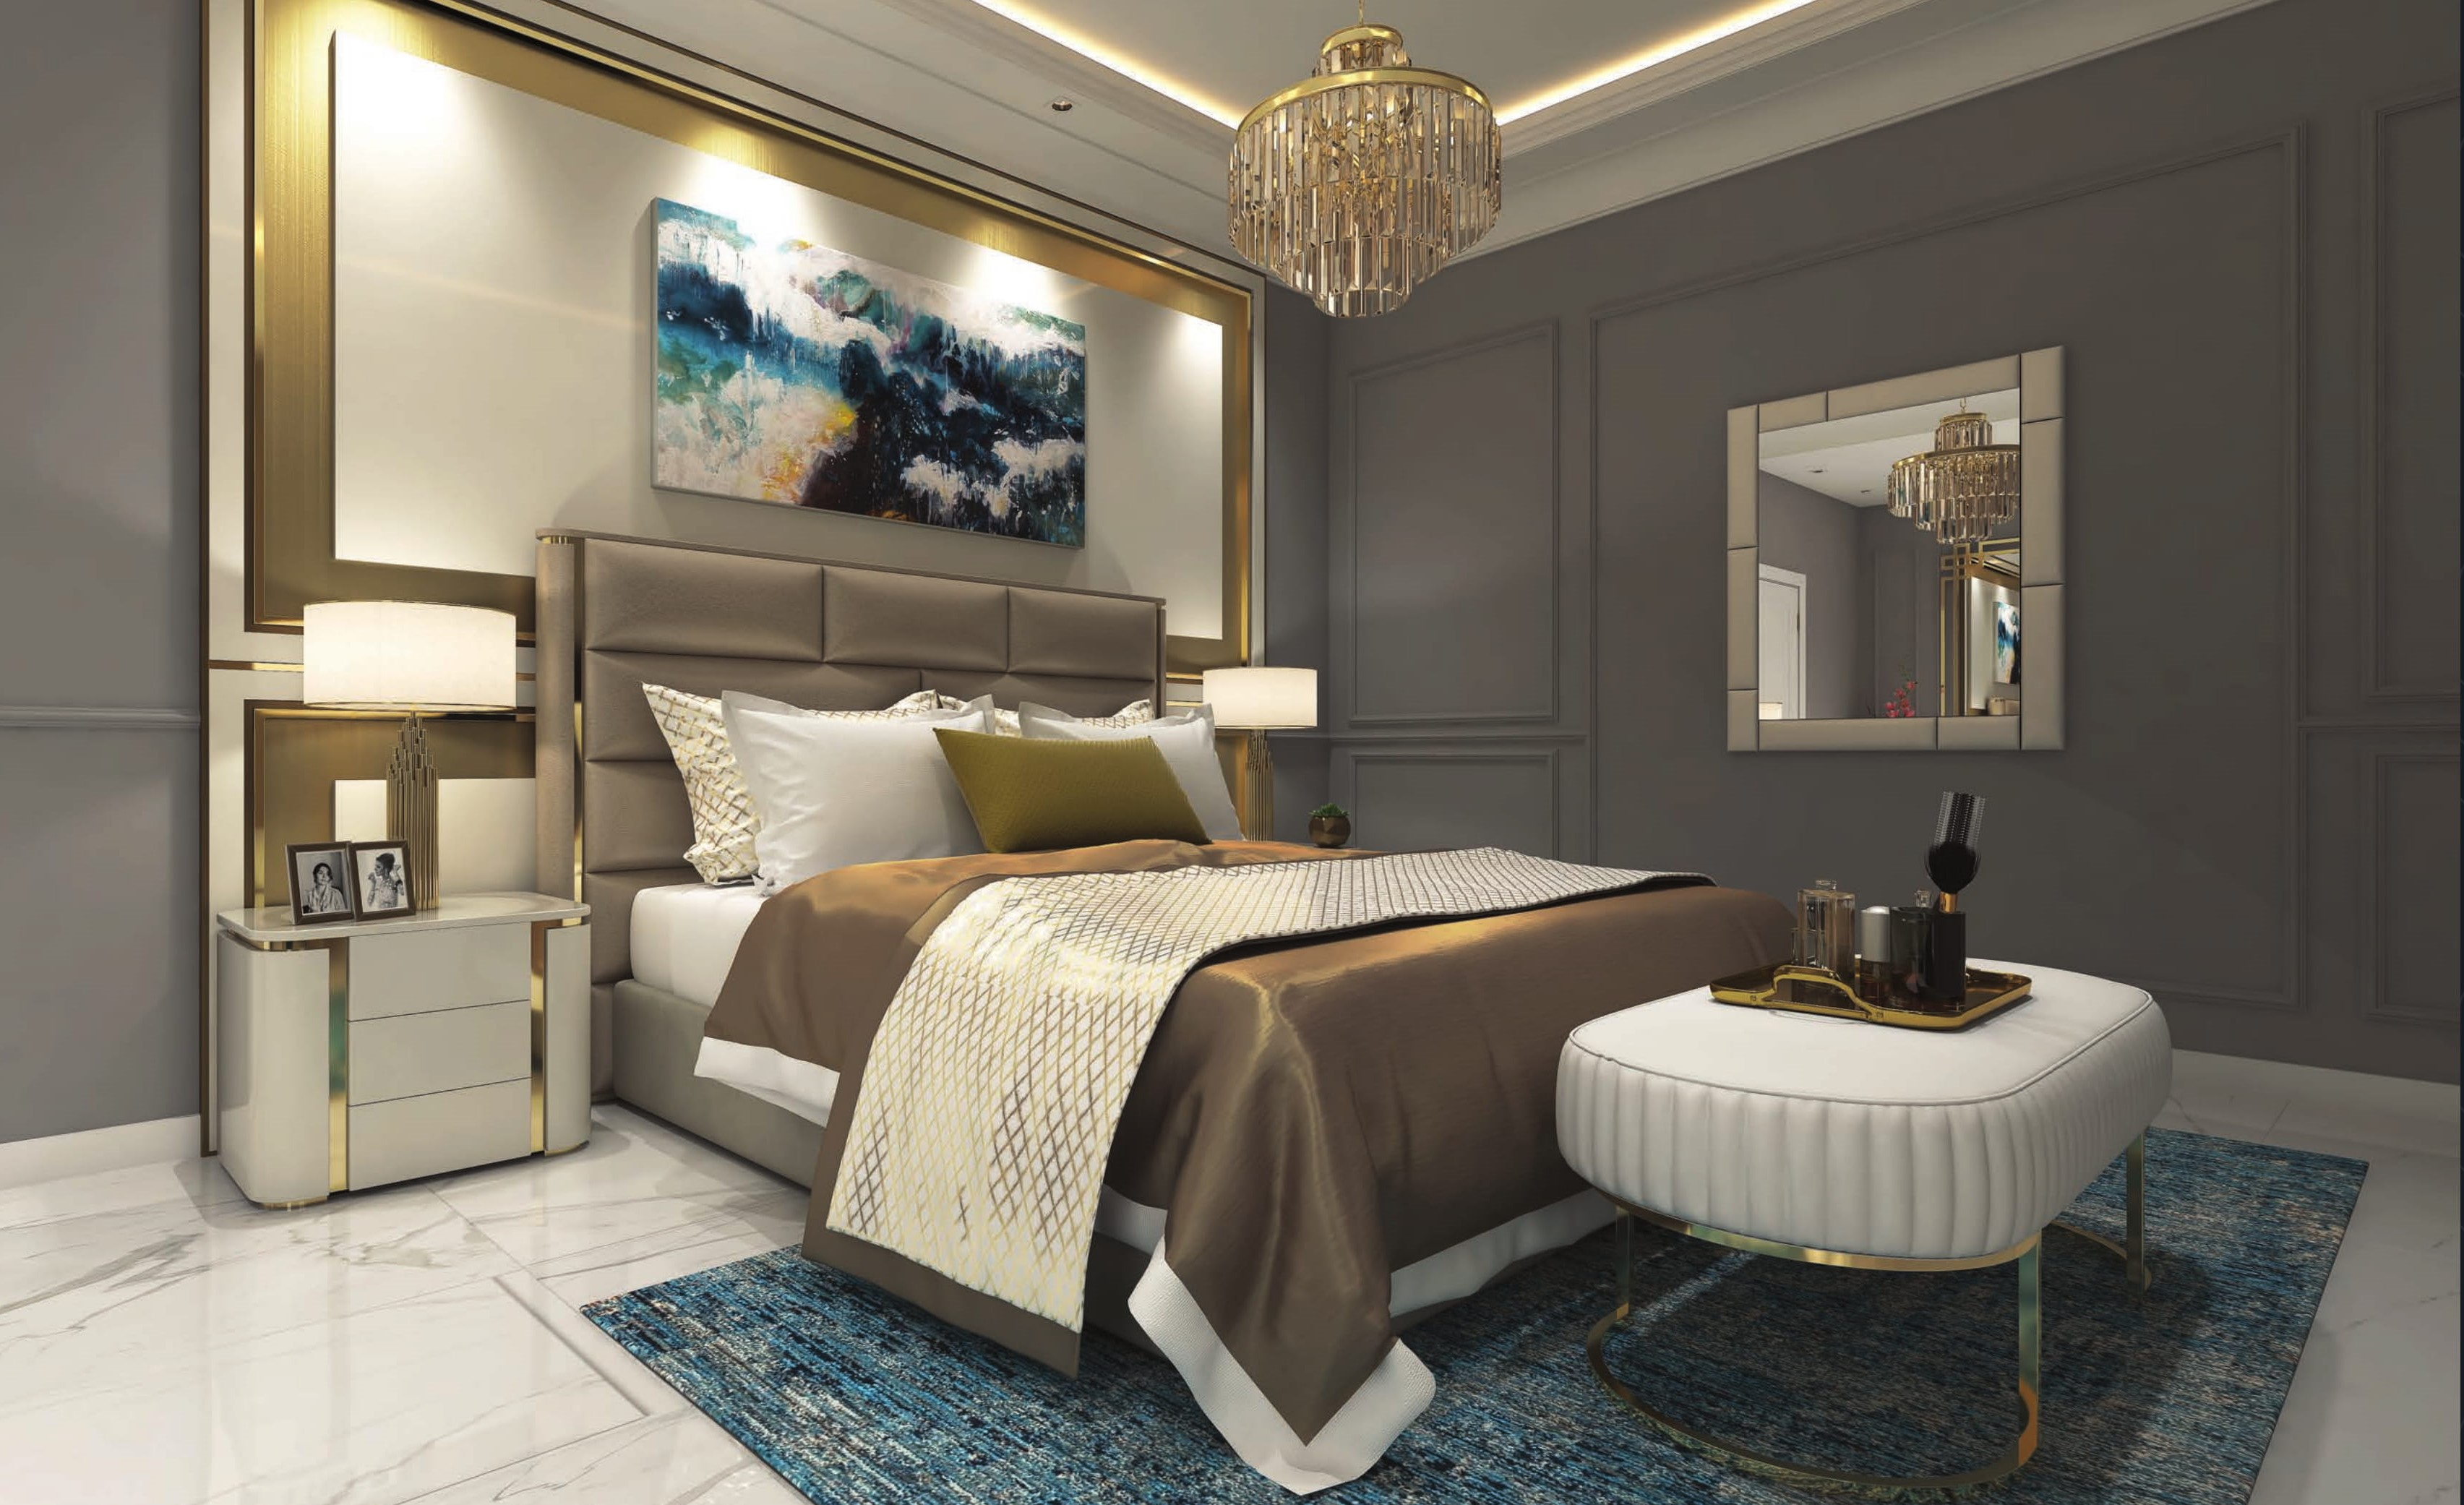 gulberg-mall-apartment-interior-lavish-bedroom